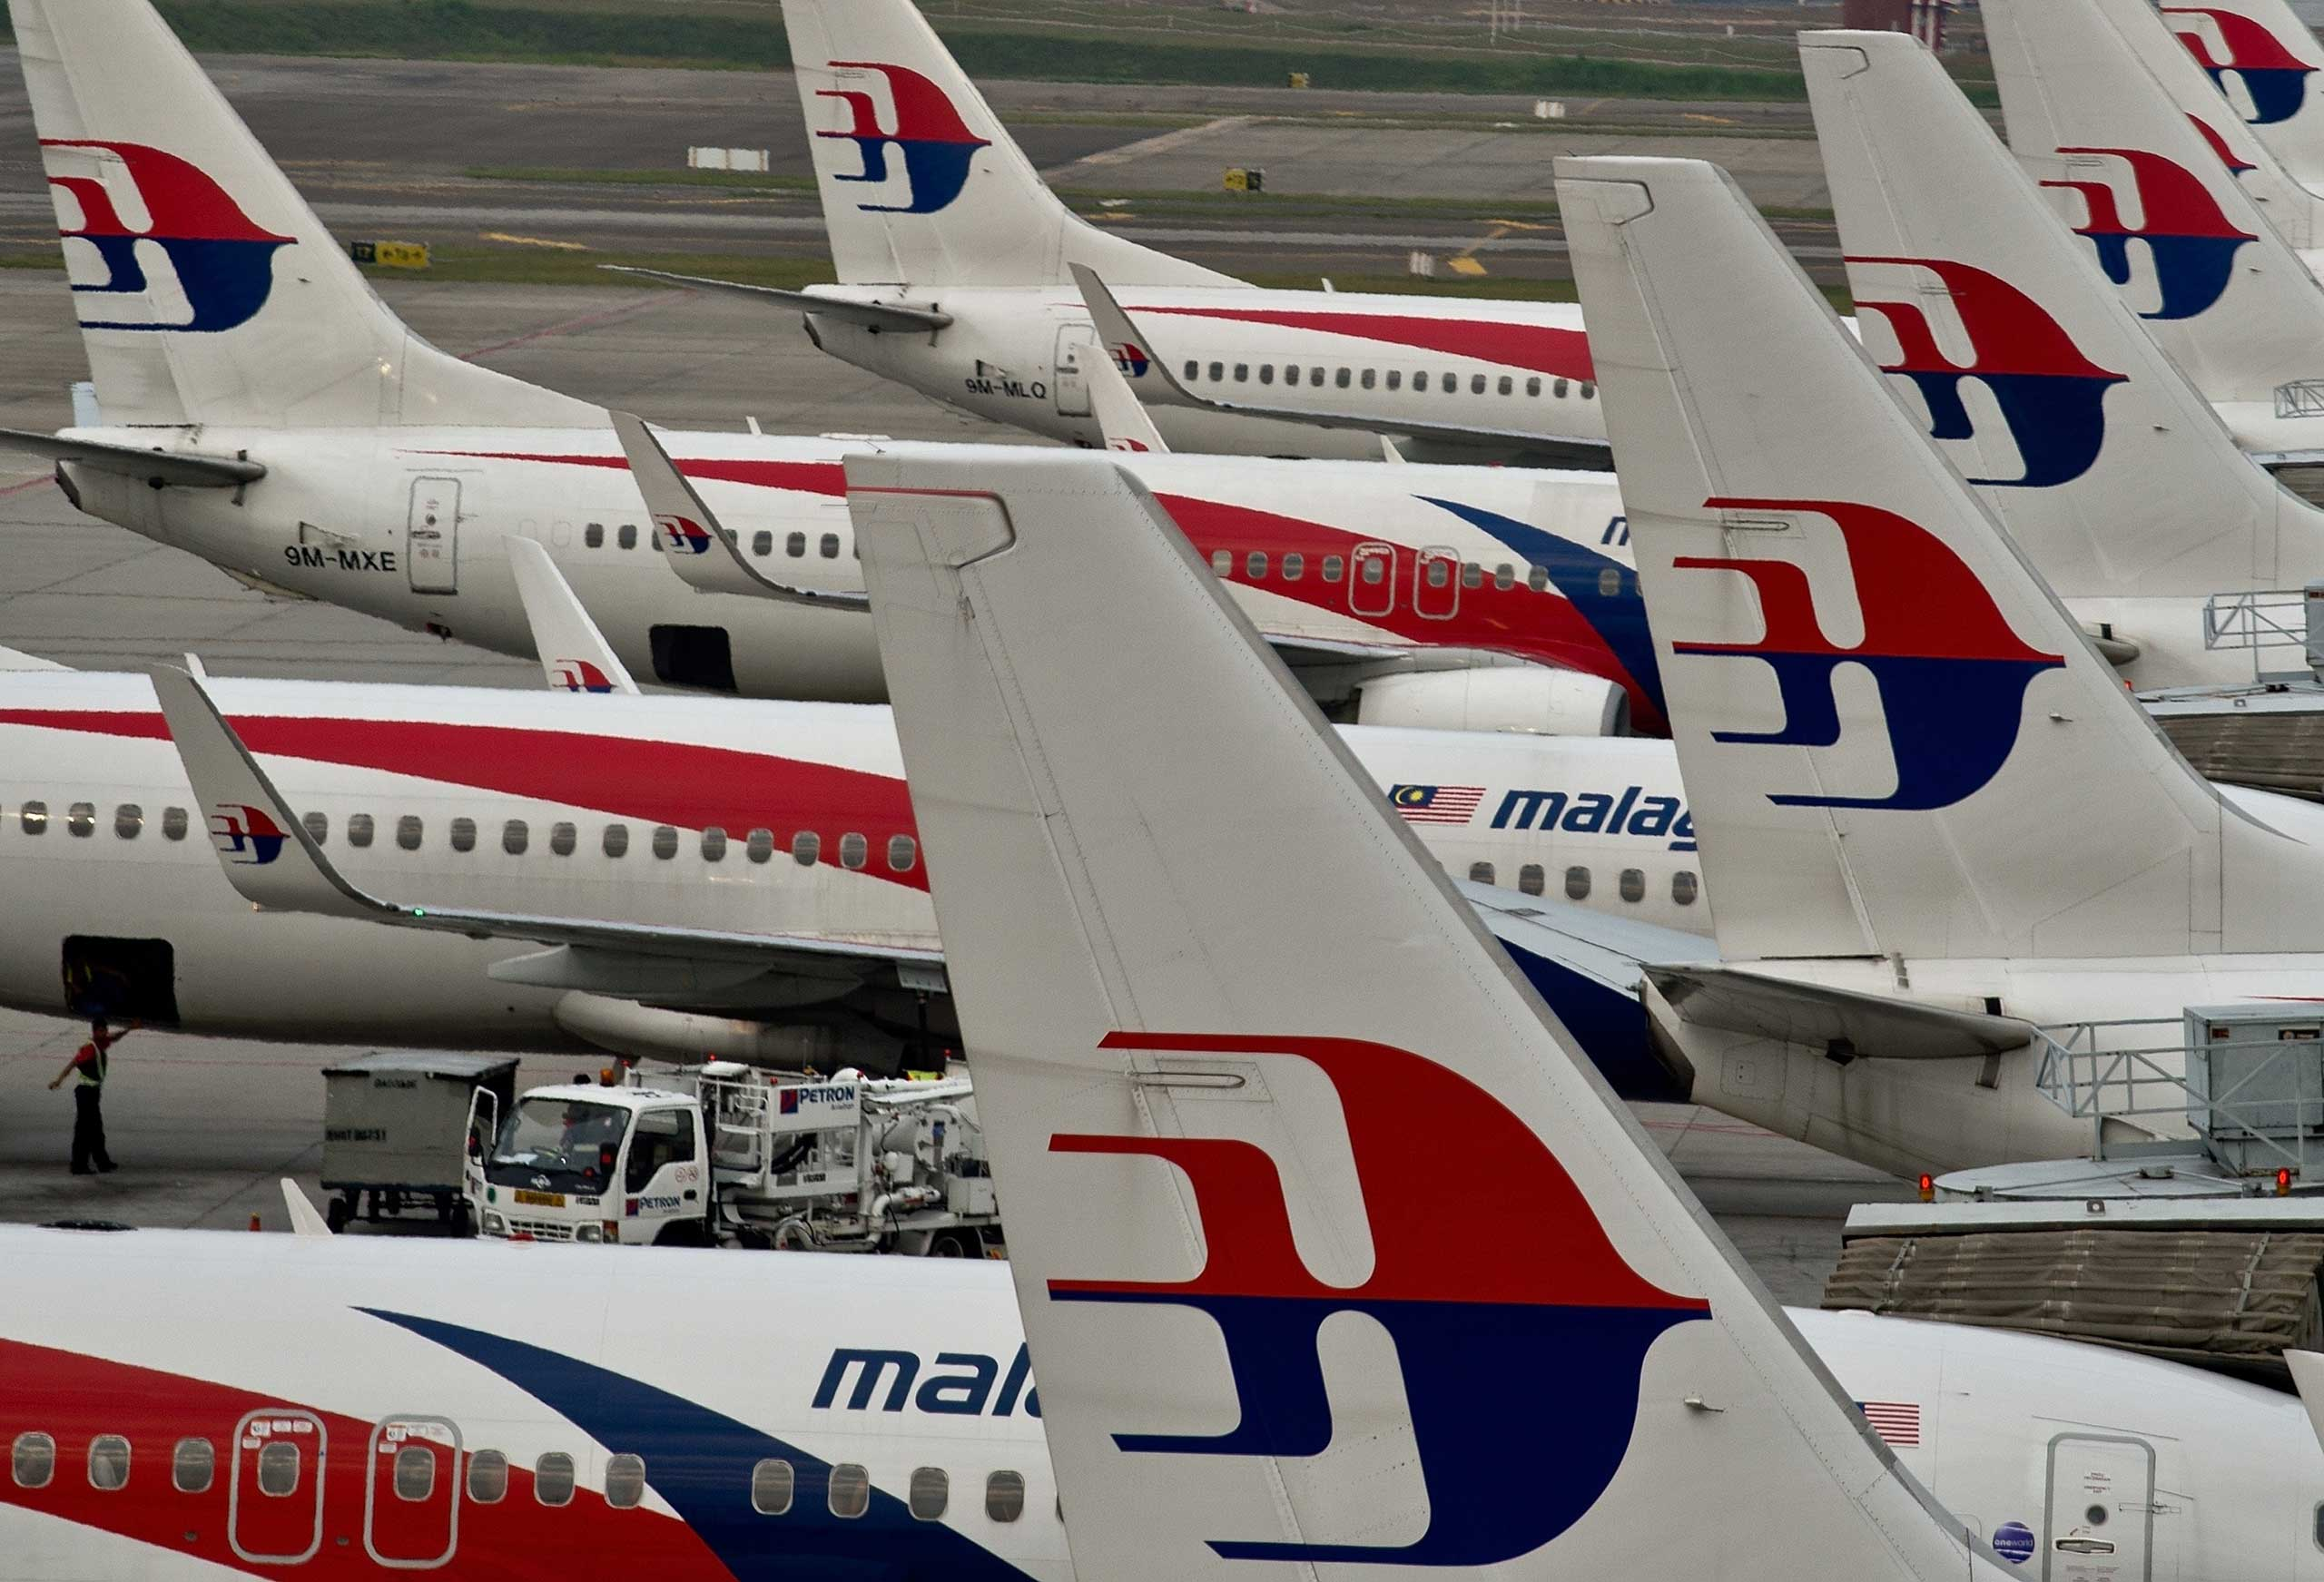 Airport groundstaff walk past Malaysia Airlines planes parked on the tarmac at the Kuala Lumpur International Airport in Sepang on June 17, 2014.